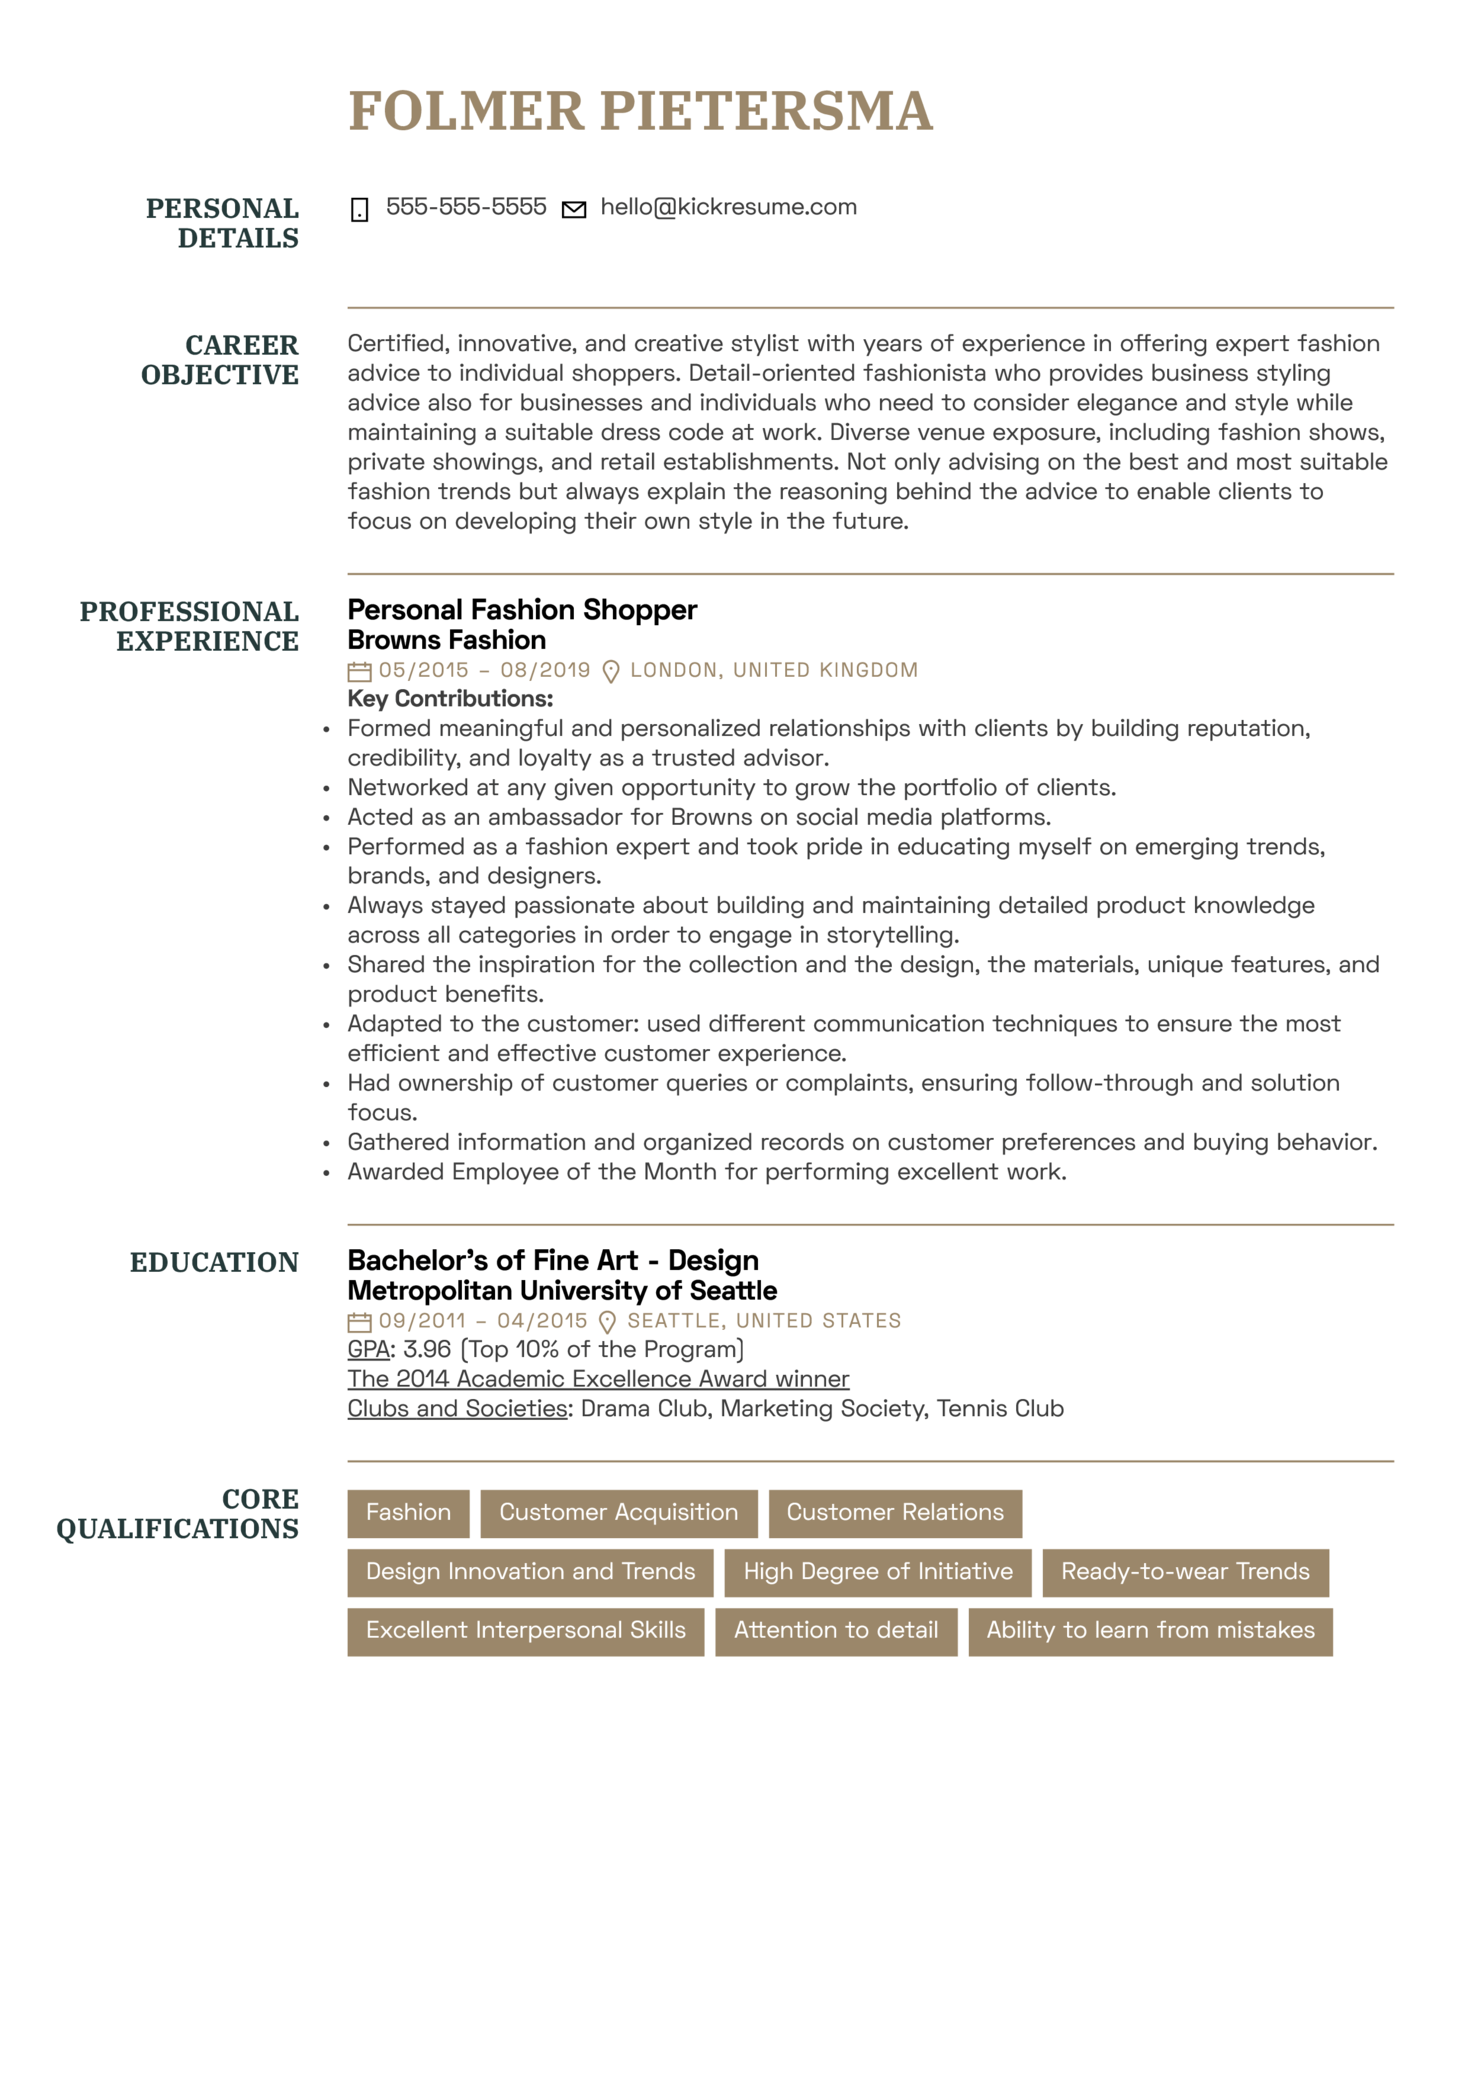 Personal Fashion Shopper Resume Sample Kickresume